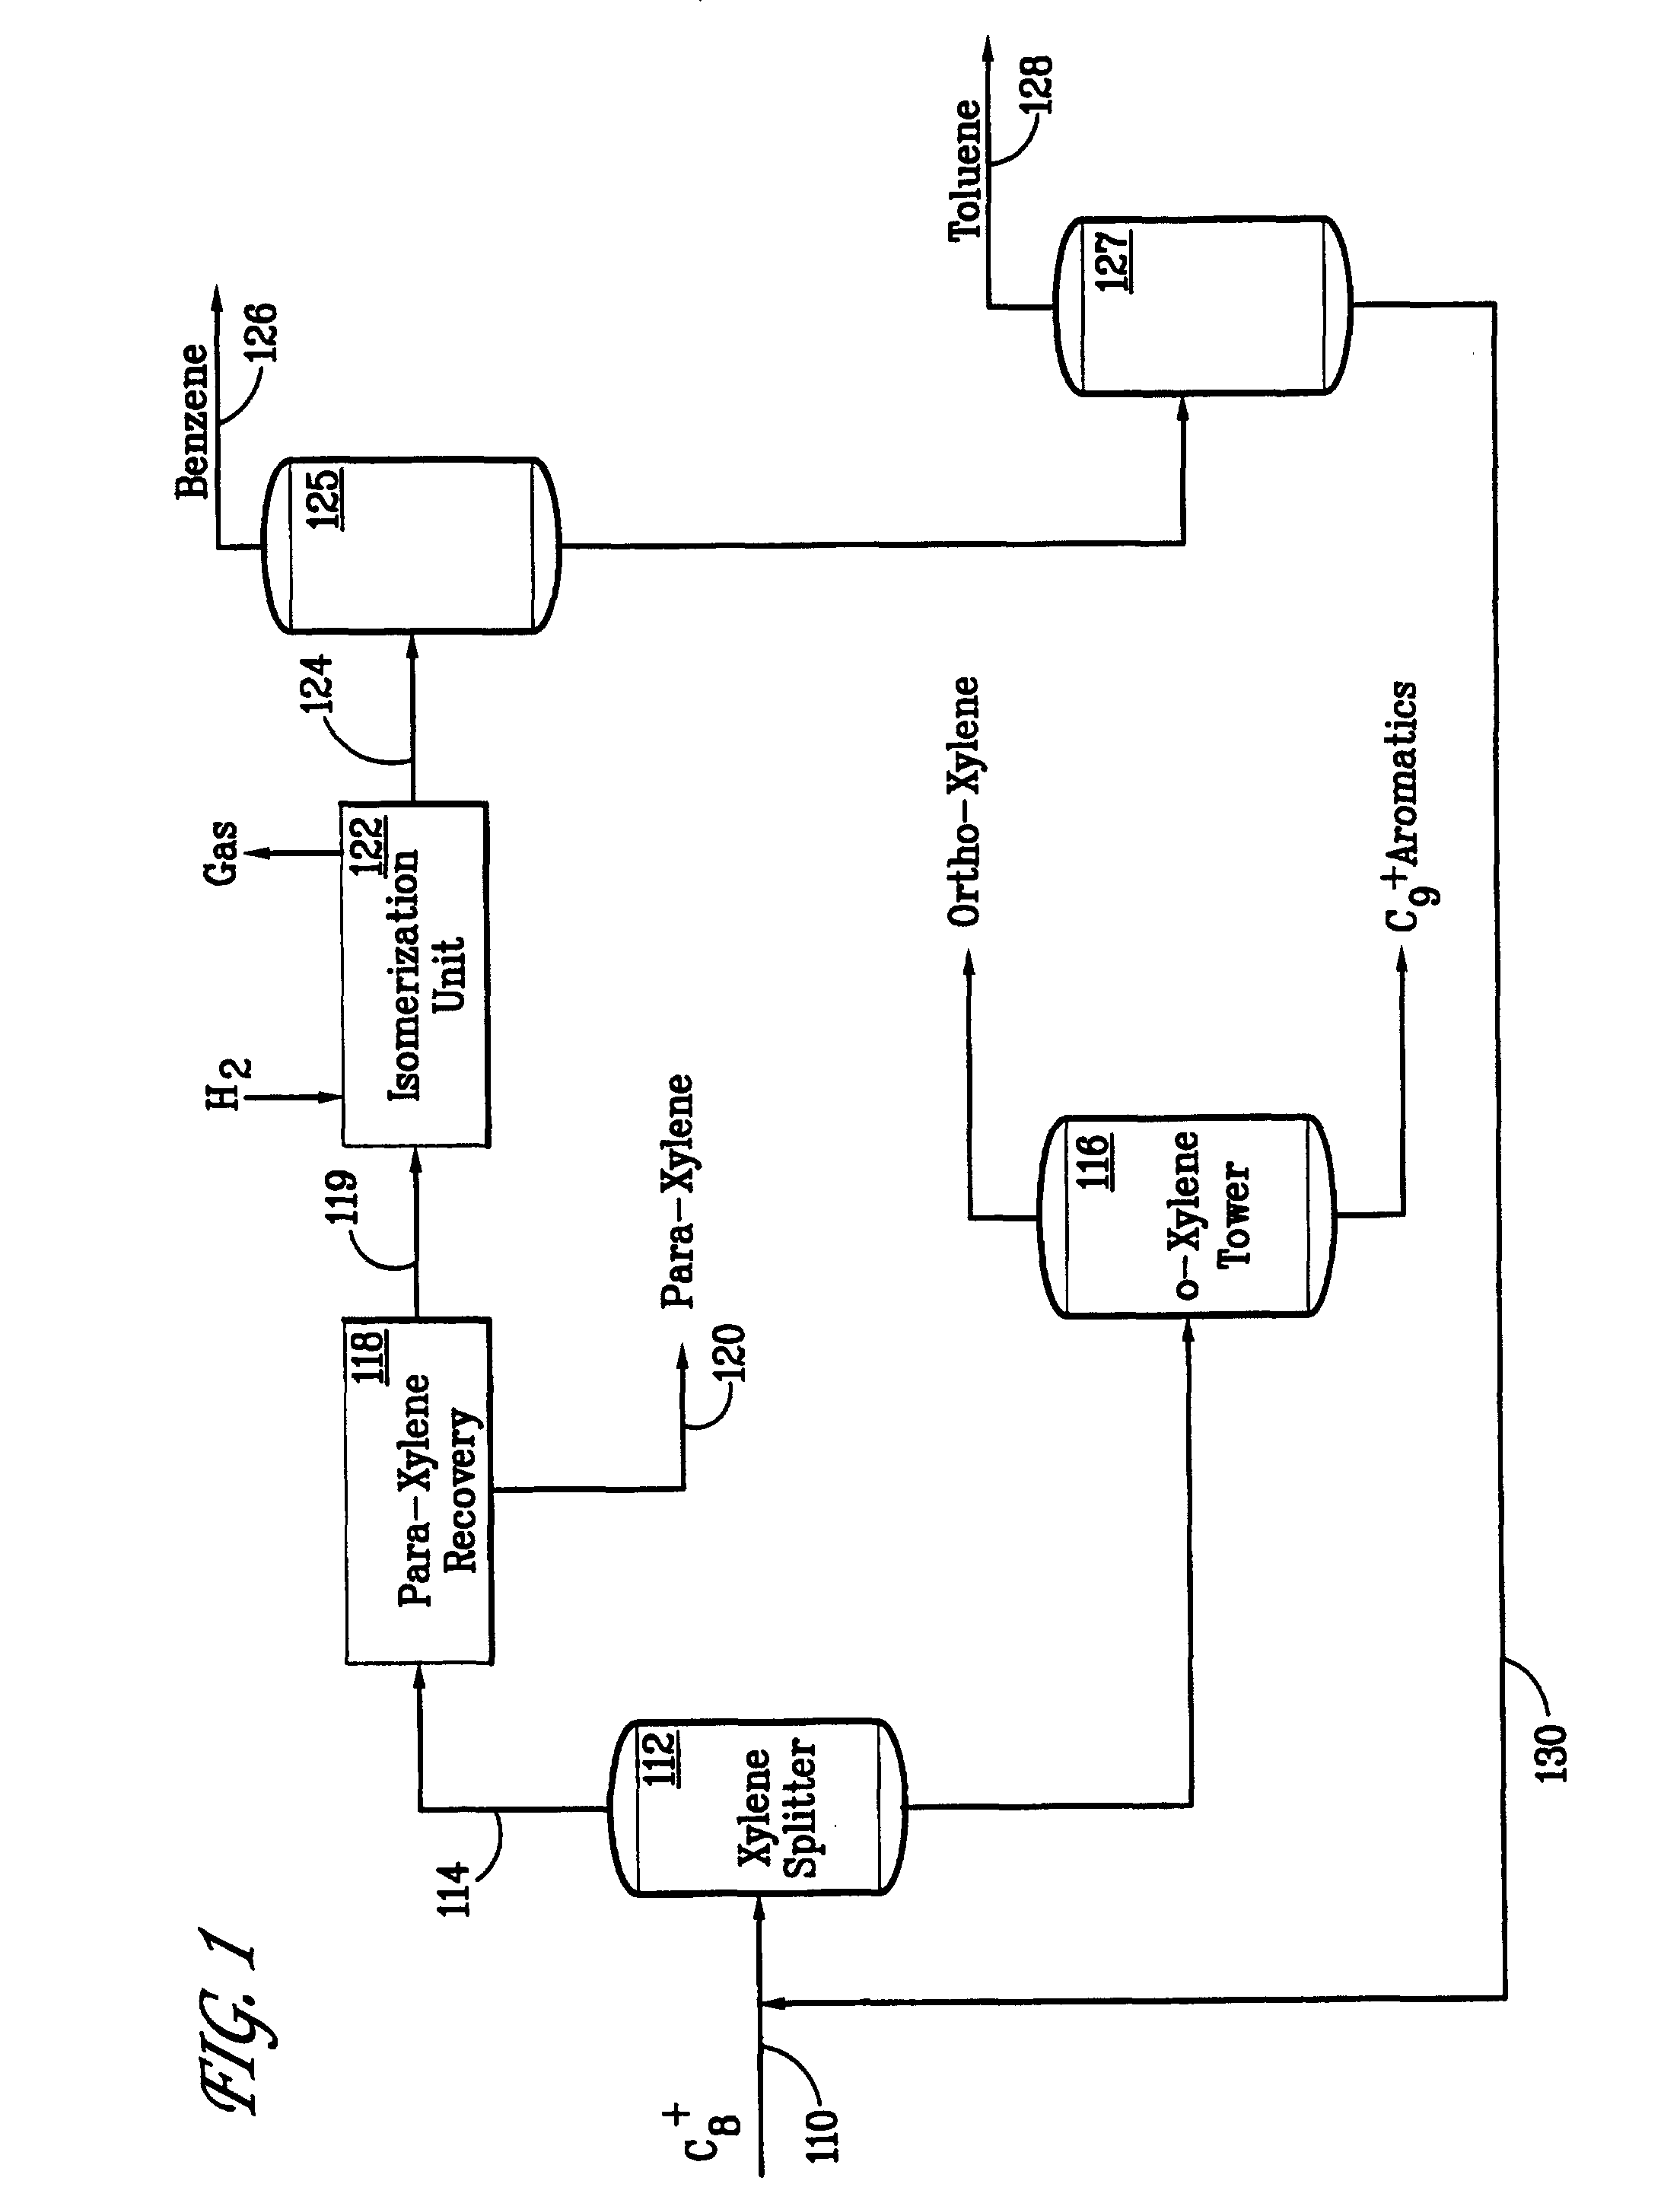 patent ep1109761b1 - para-xylene production process